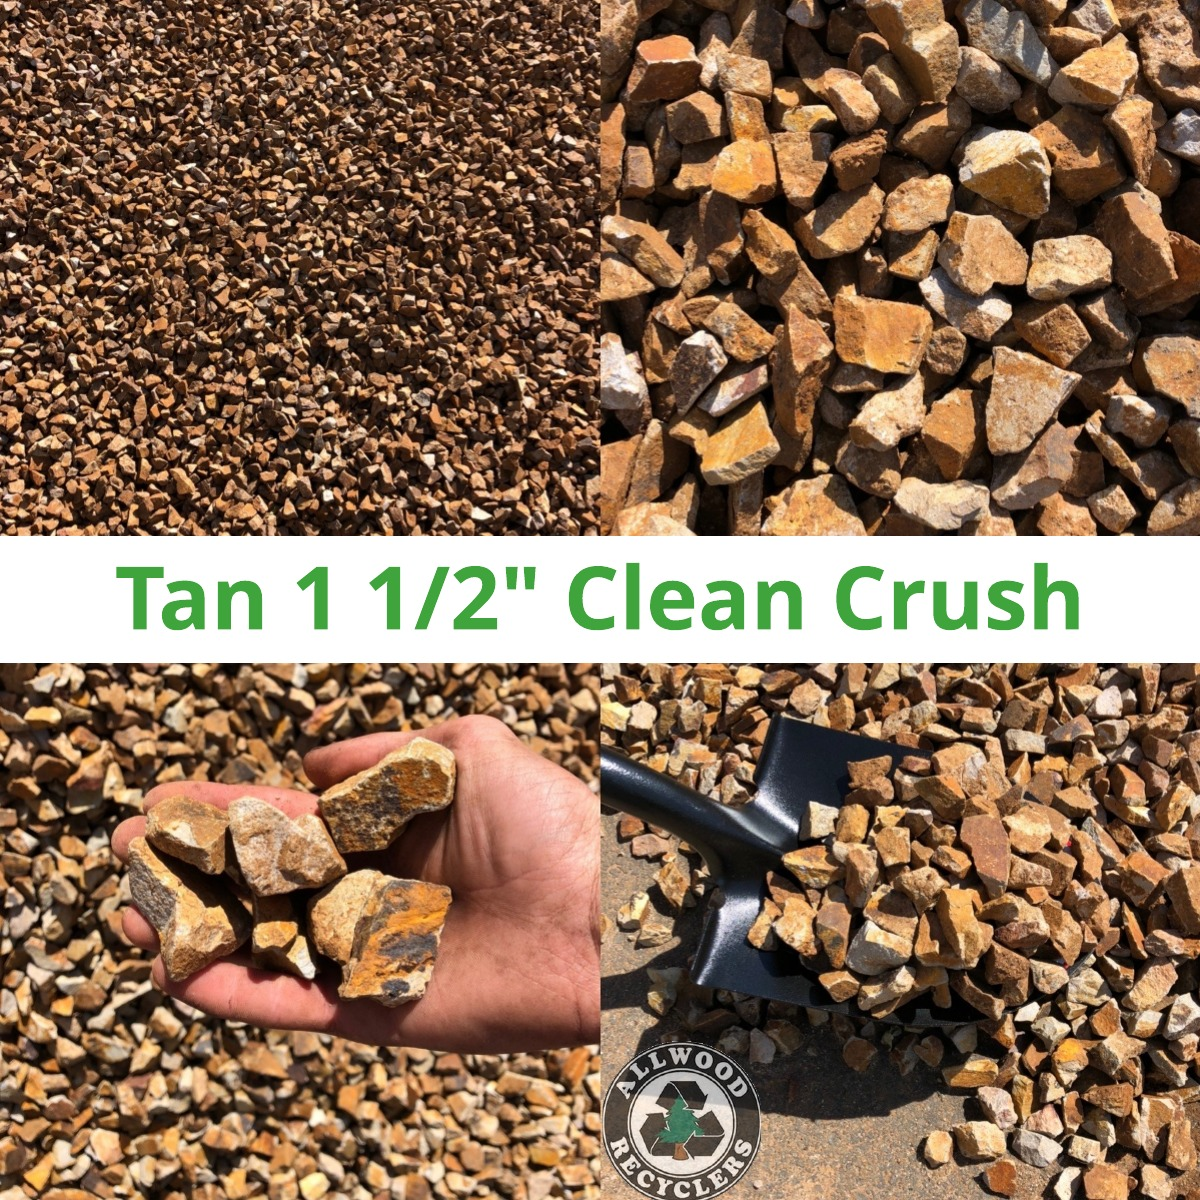 Tan 1 1/2 Clean Crush Rock